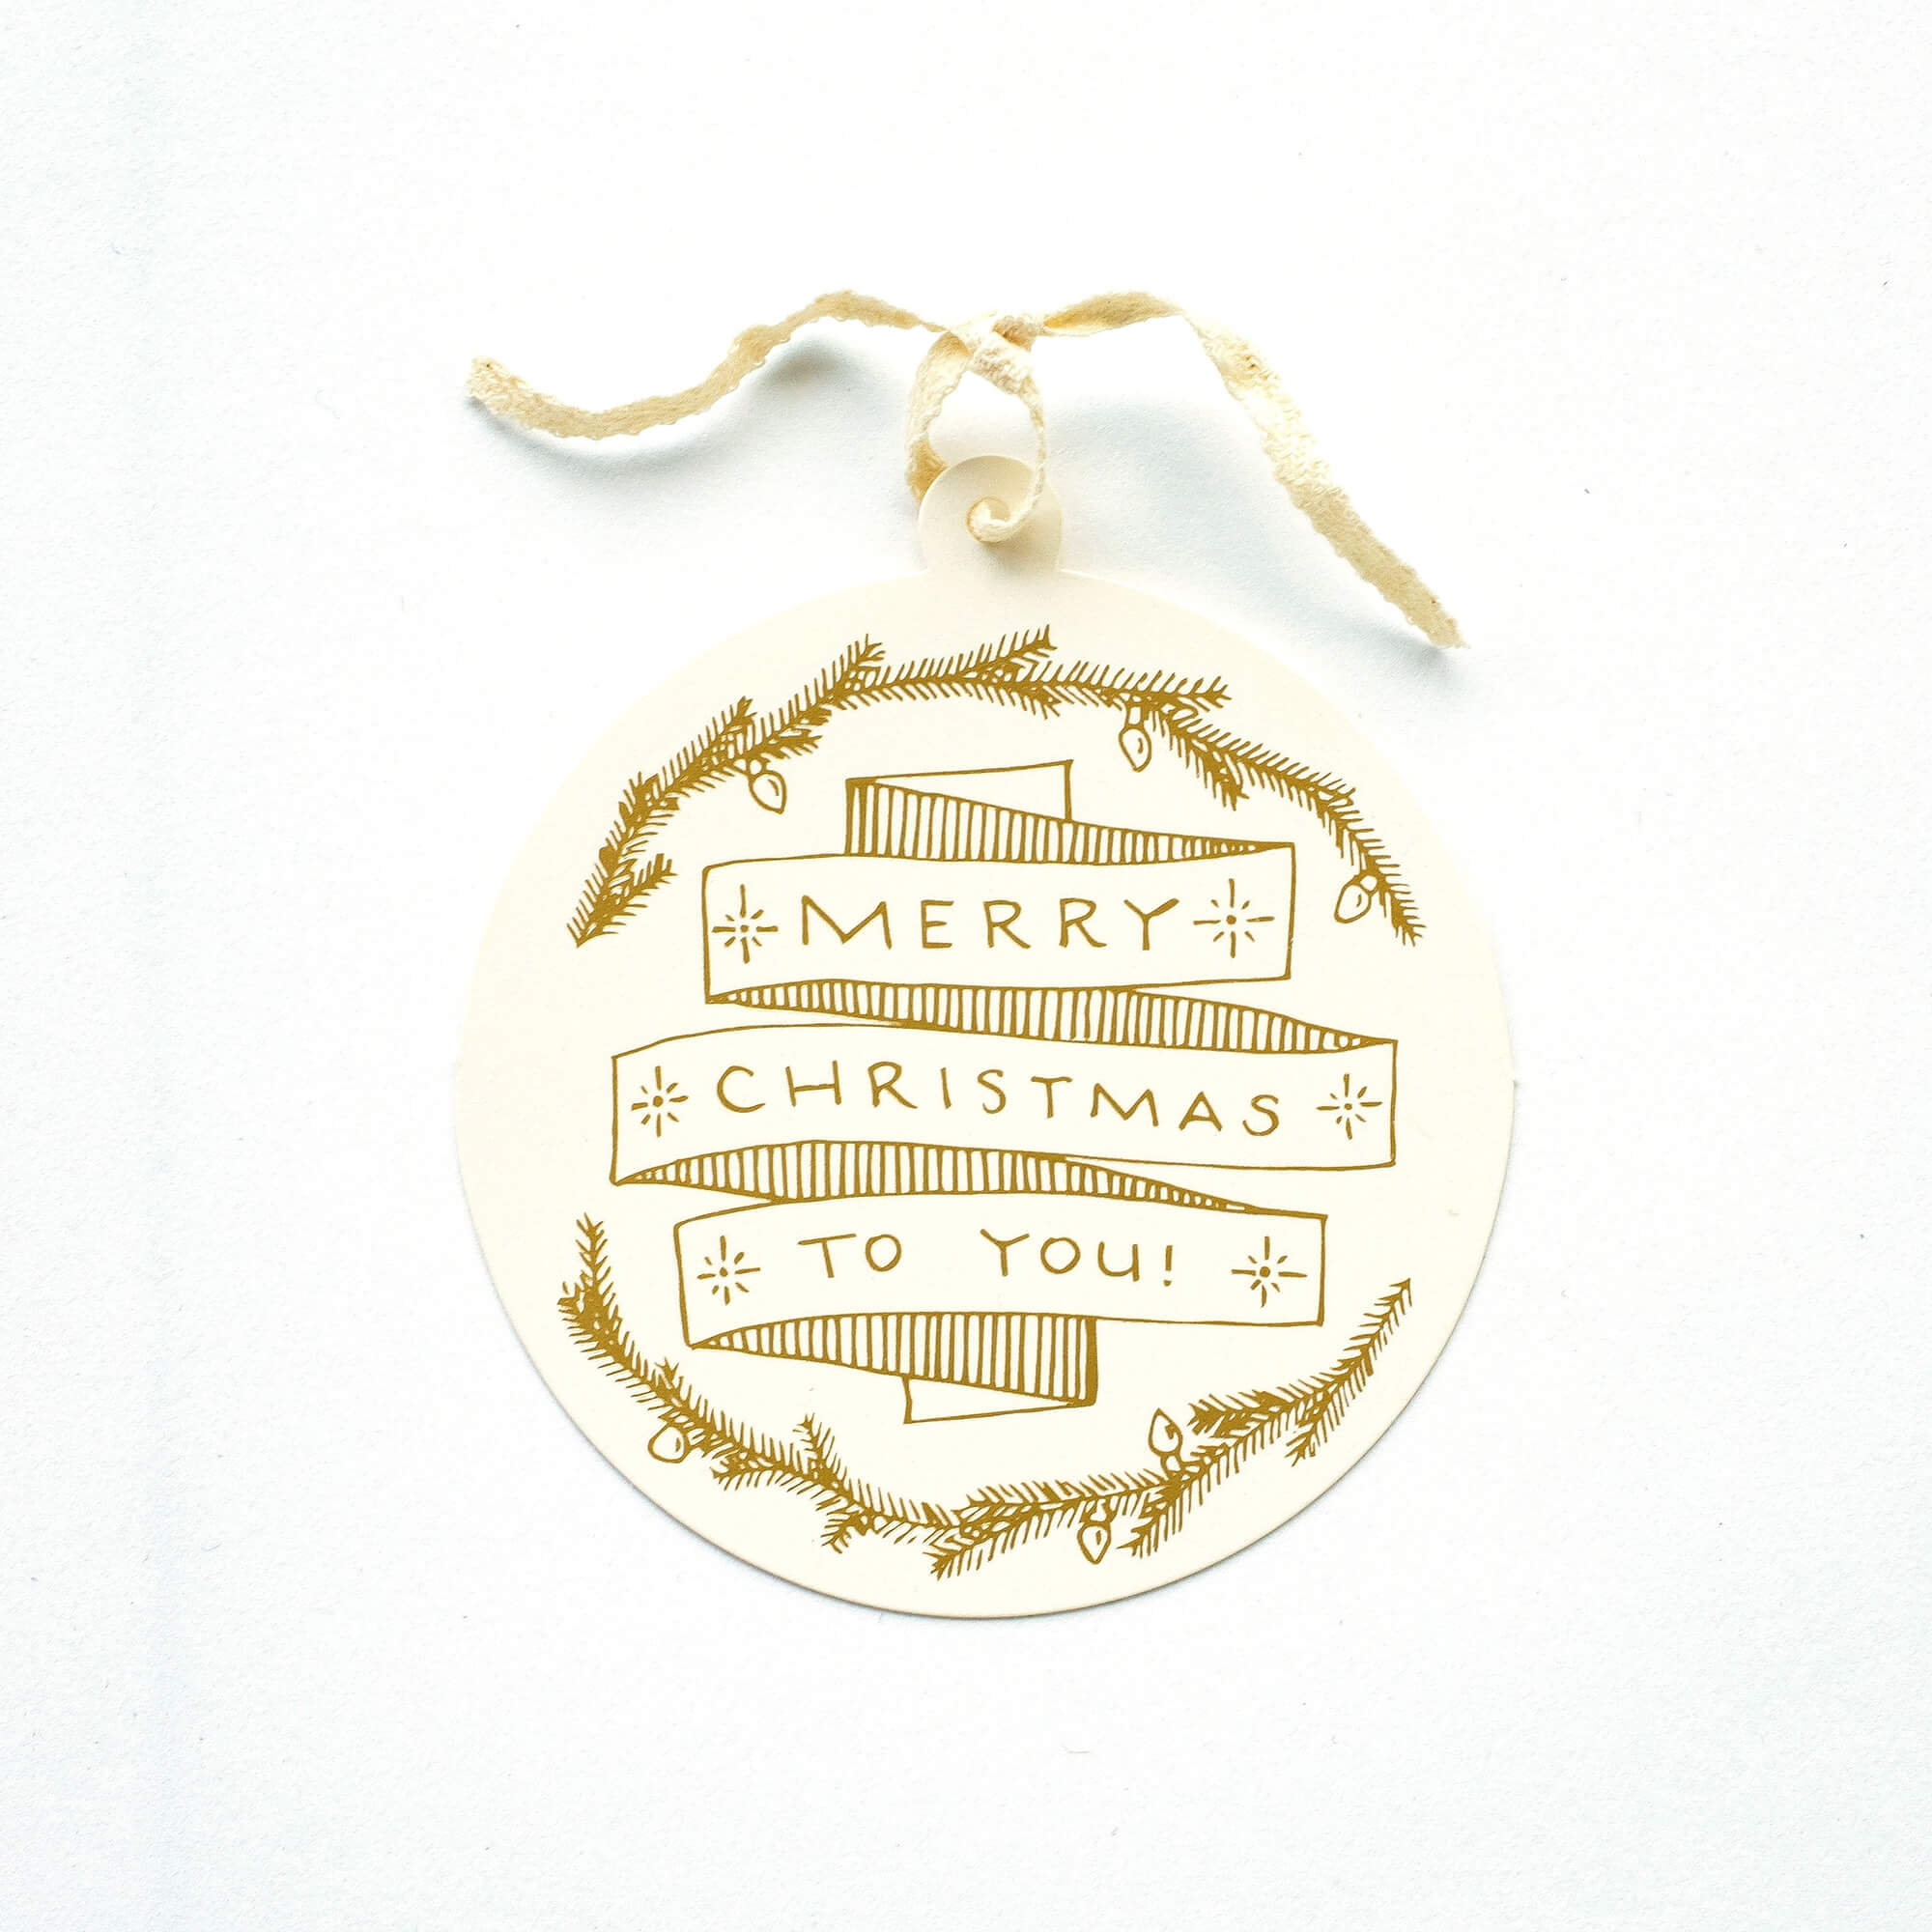 Merry Christmas To You Gift Tag | The Gilded Thistle